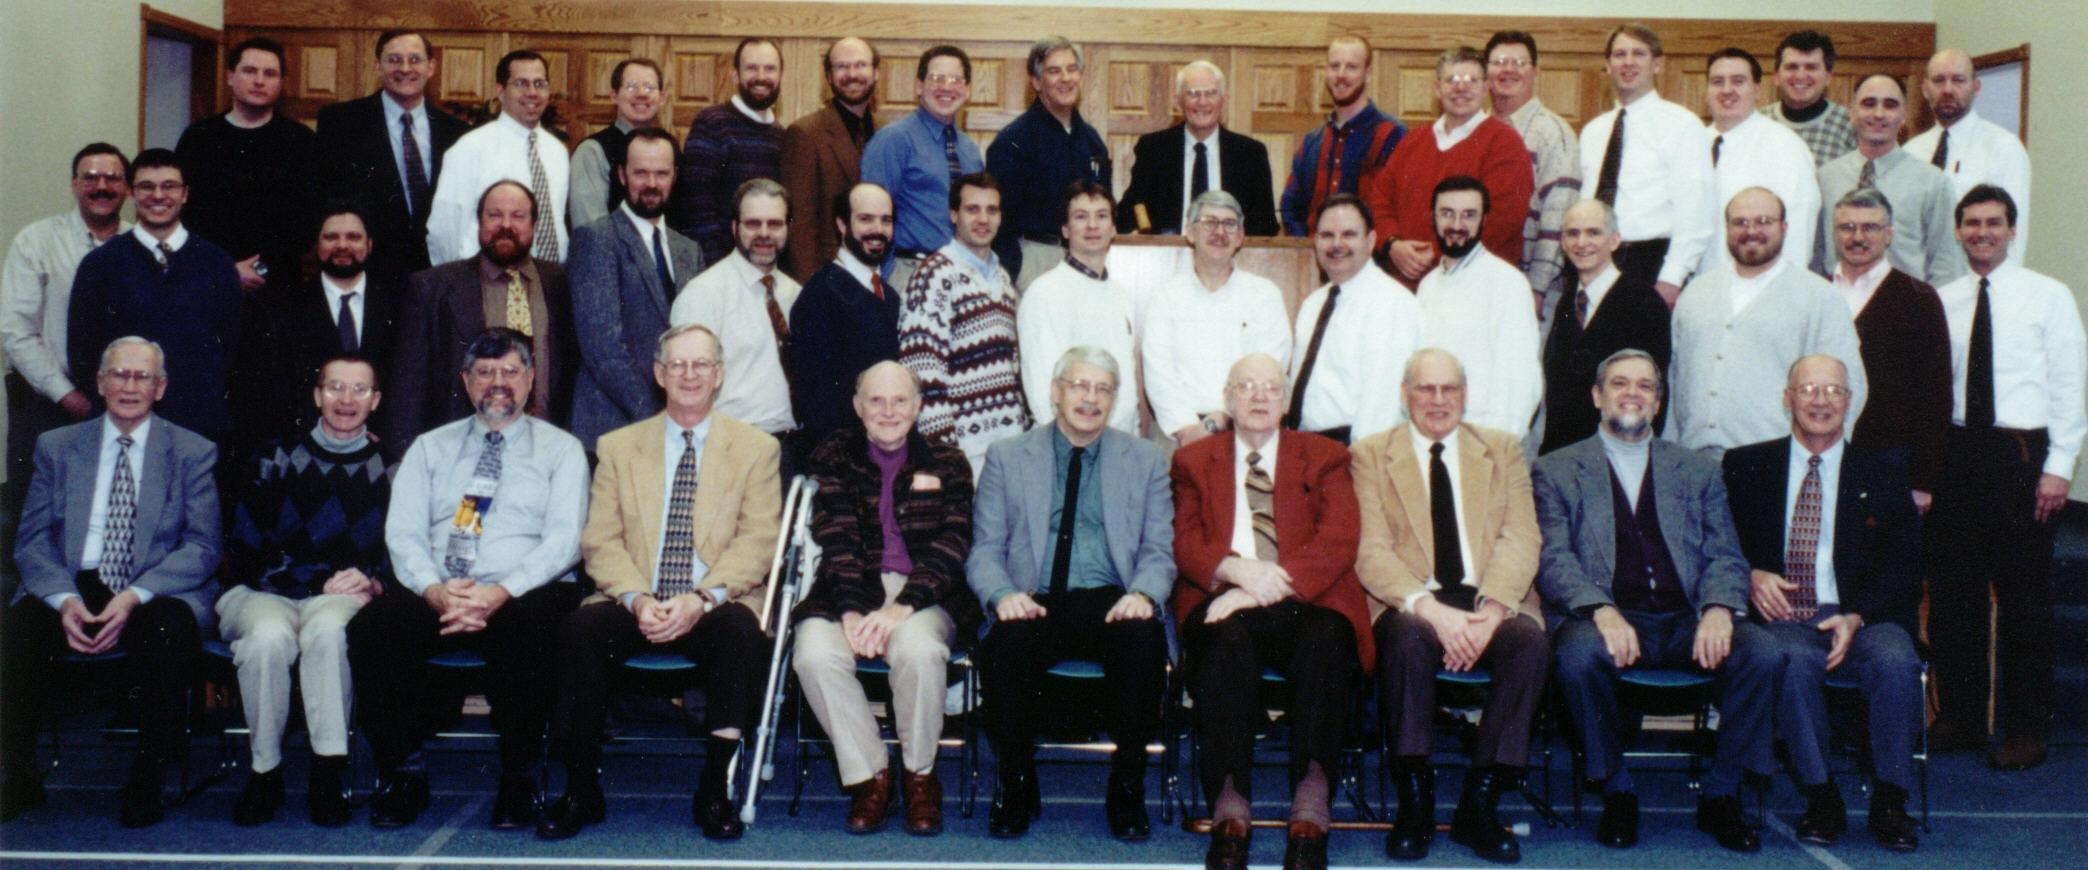 Presbytery of Michigan and Ohio, 1-21-2000